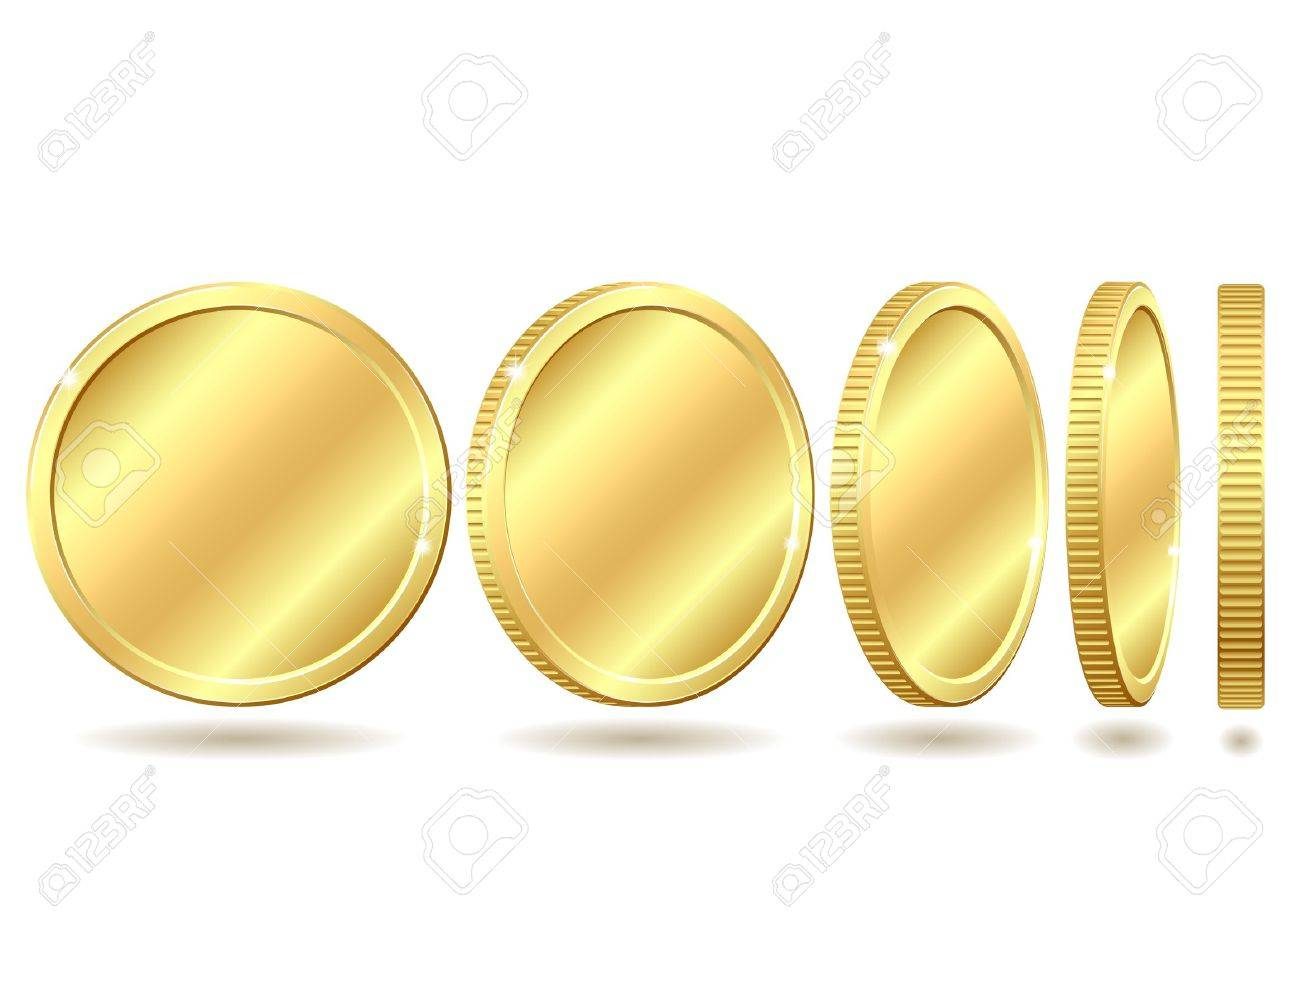 Gold coin with different angles Stock Vector - 13725501